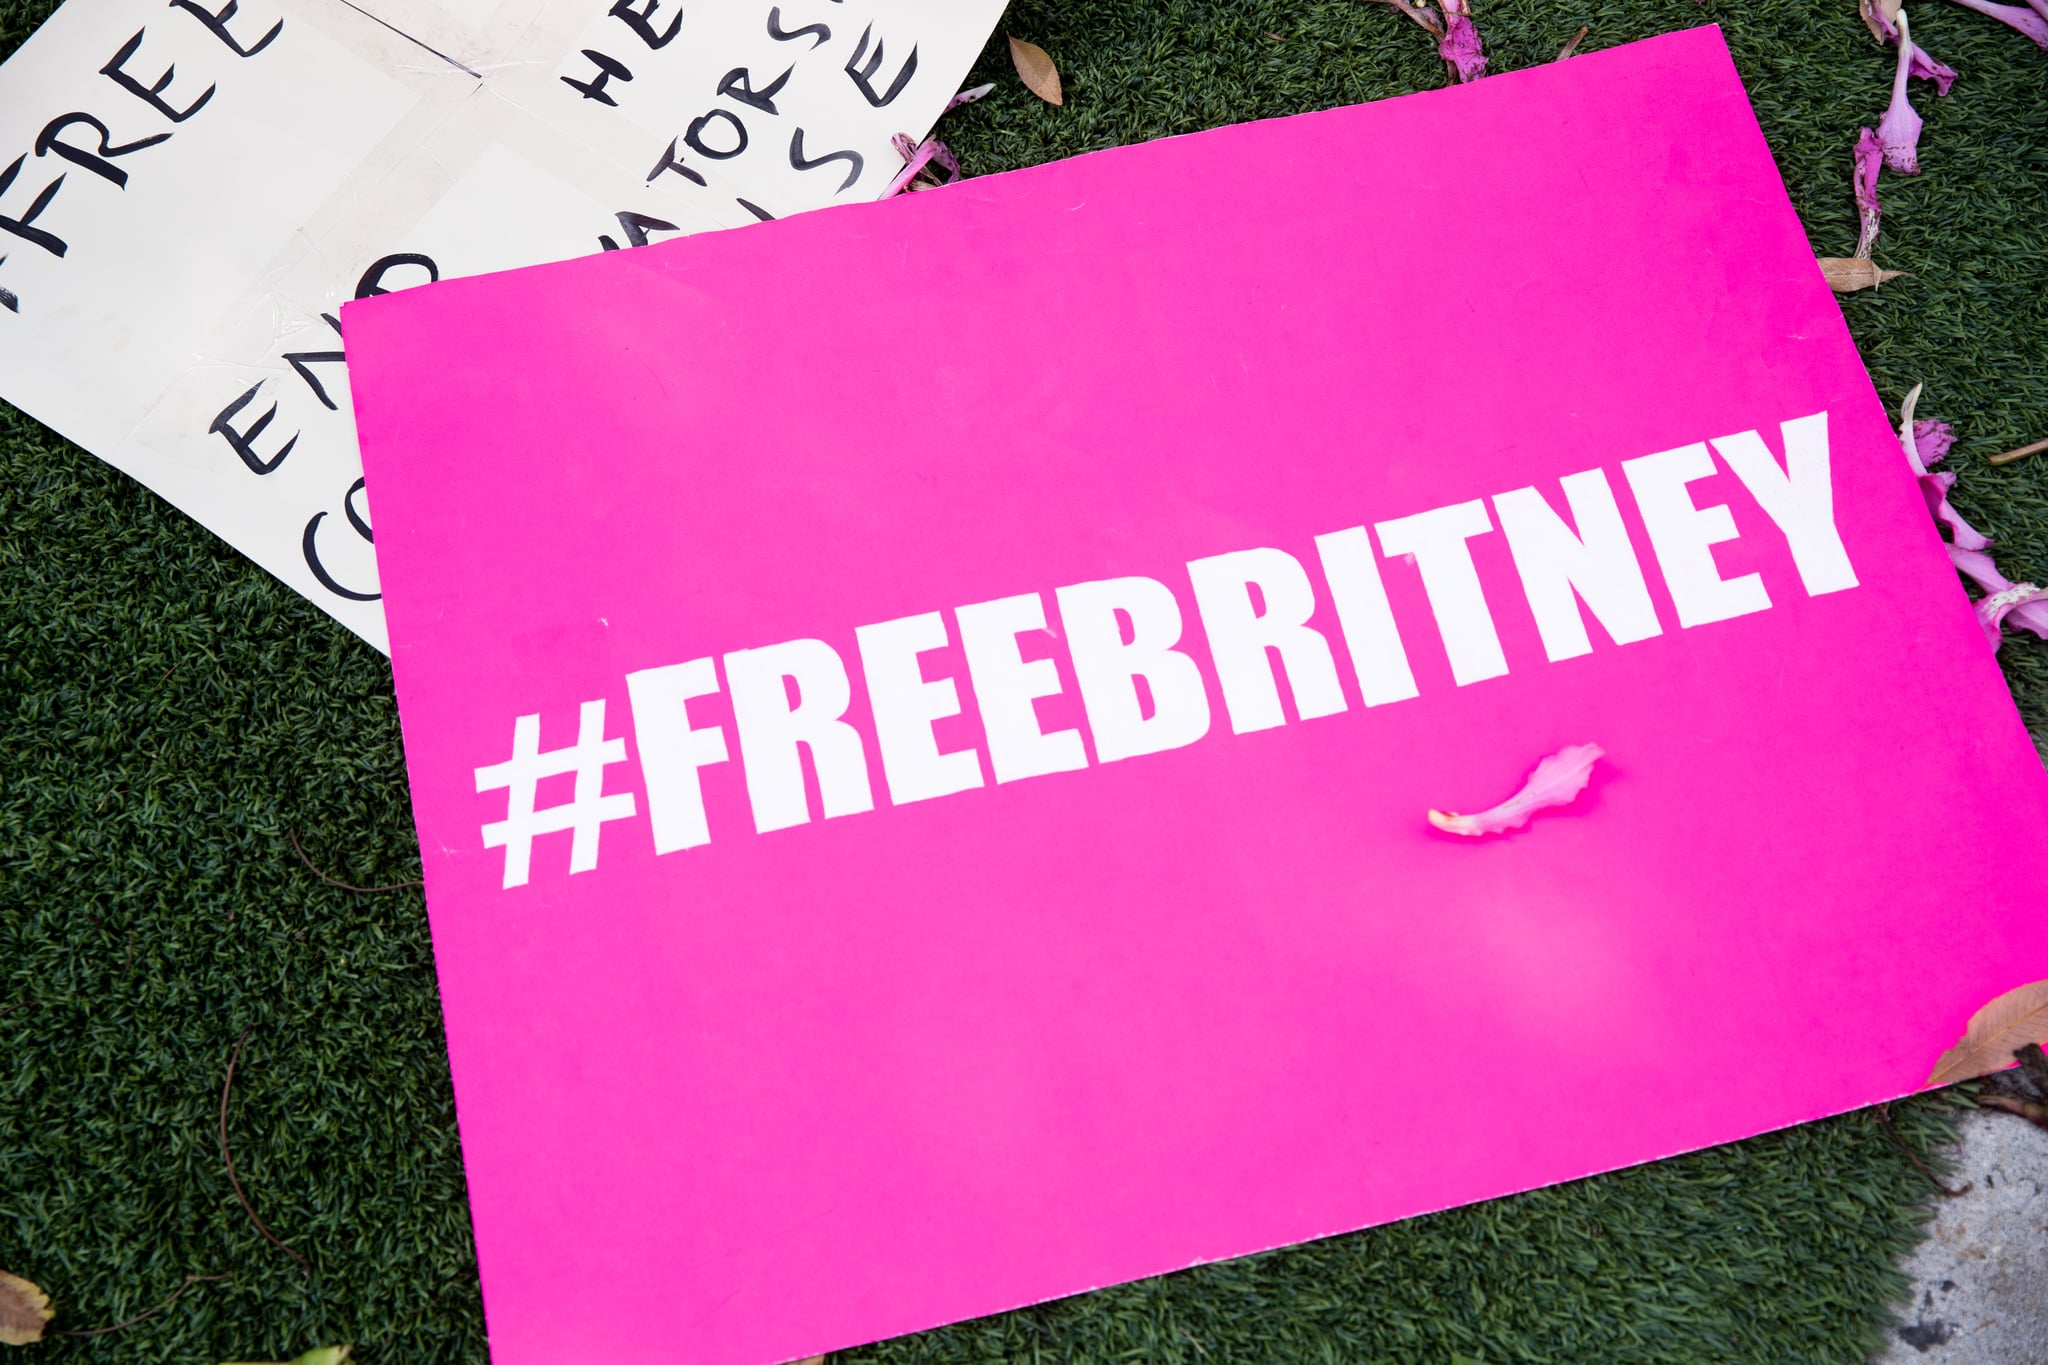 WEST HOLLYWOOD, CALIFORNIA - SEPTEMBER 15: Signs in support of Britney Spears are seen during a #FreeBritney protest outside of the Tri Star Sports & Entertainment Group offices on September 15, 2020 in West Hollywood, California. (Photo by Rich Fury/Getty Images)